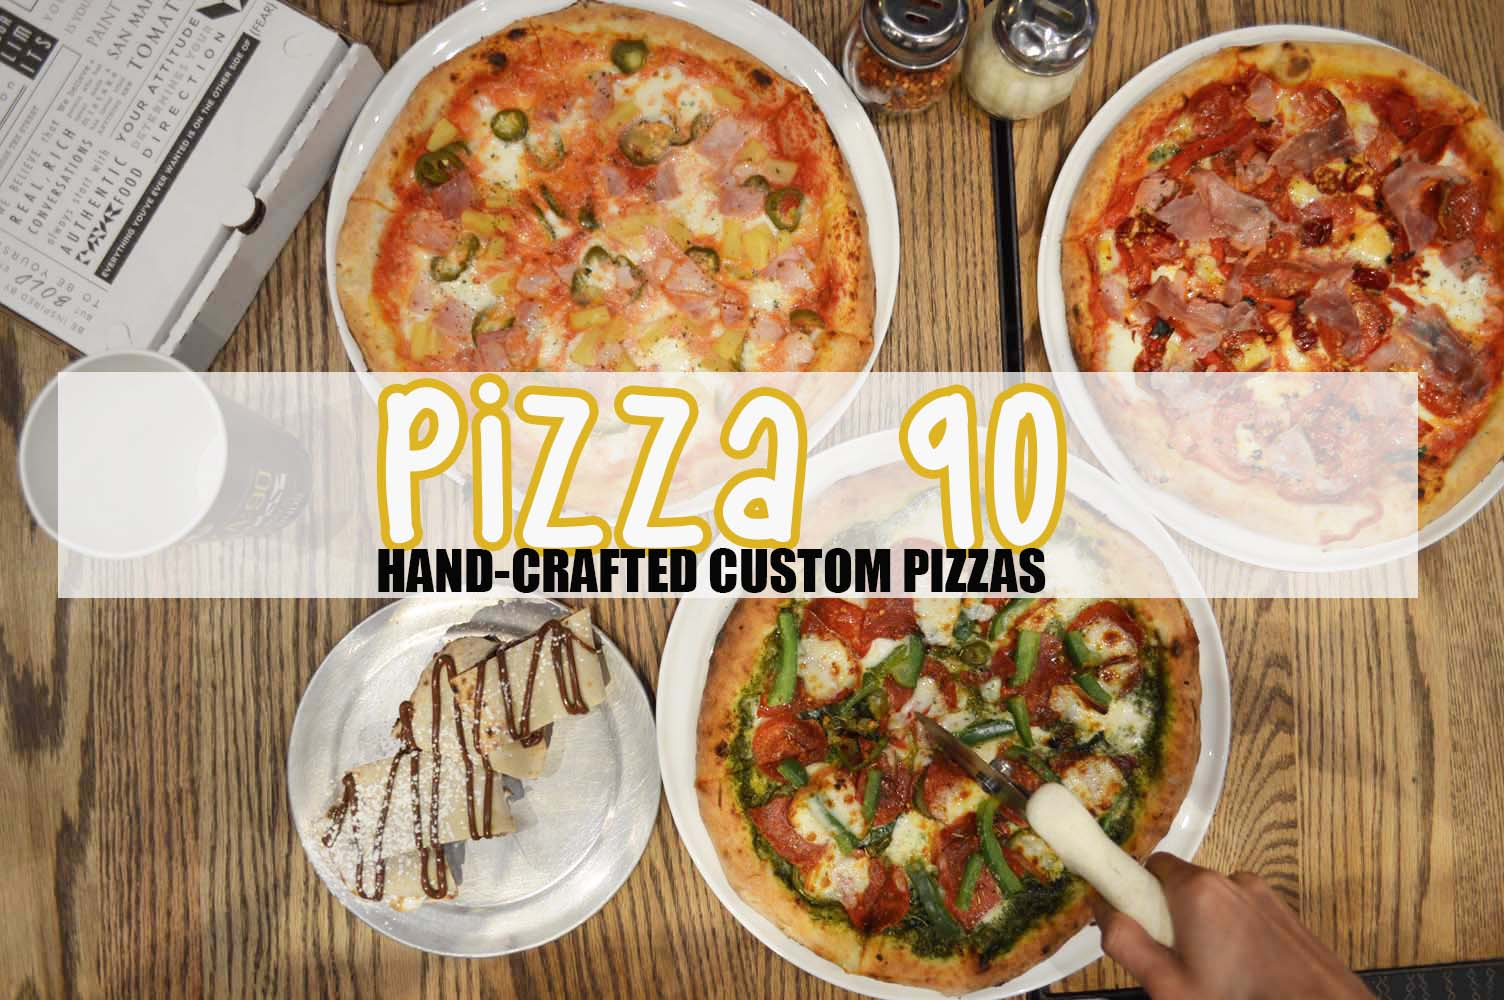 PIZZA 90: WHERE YOU CAN CUSTOMIZE PIZZA WITH QUALITY OPTIONS